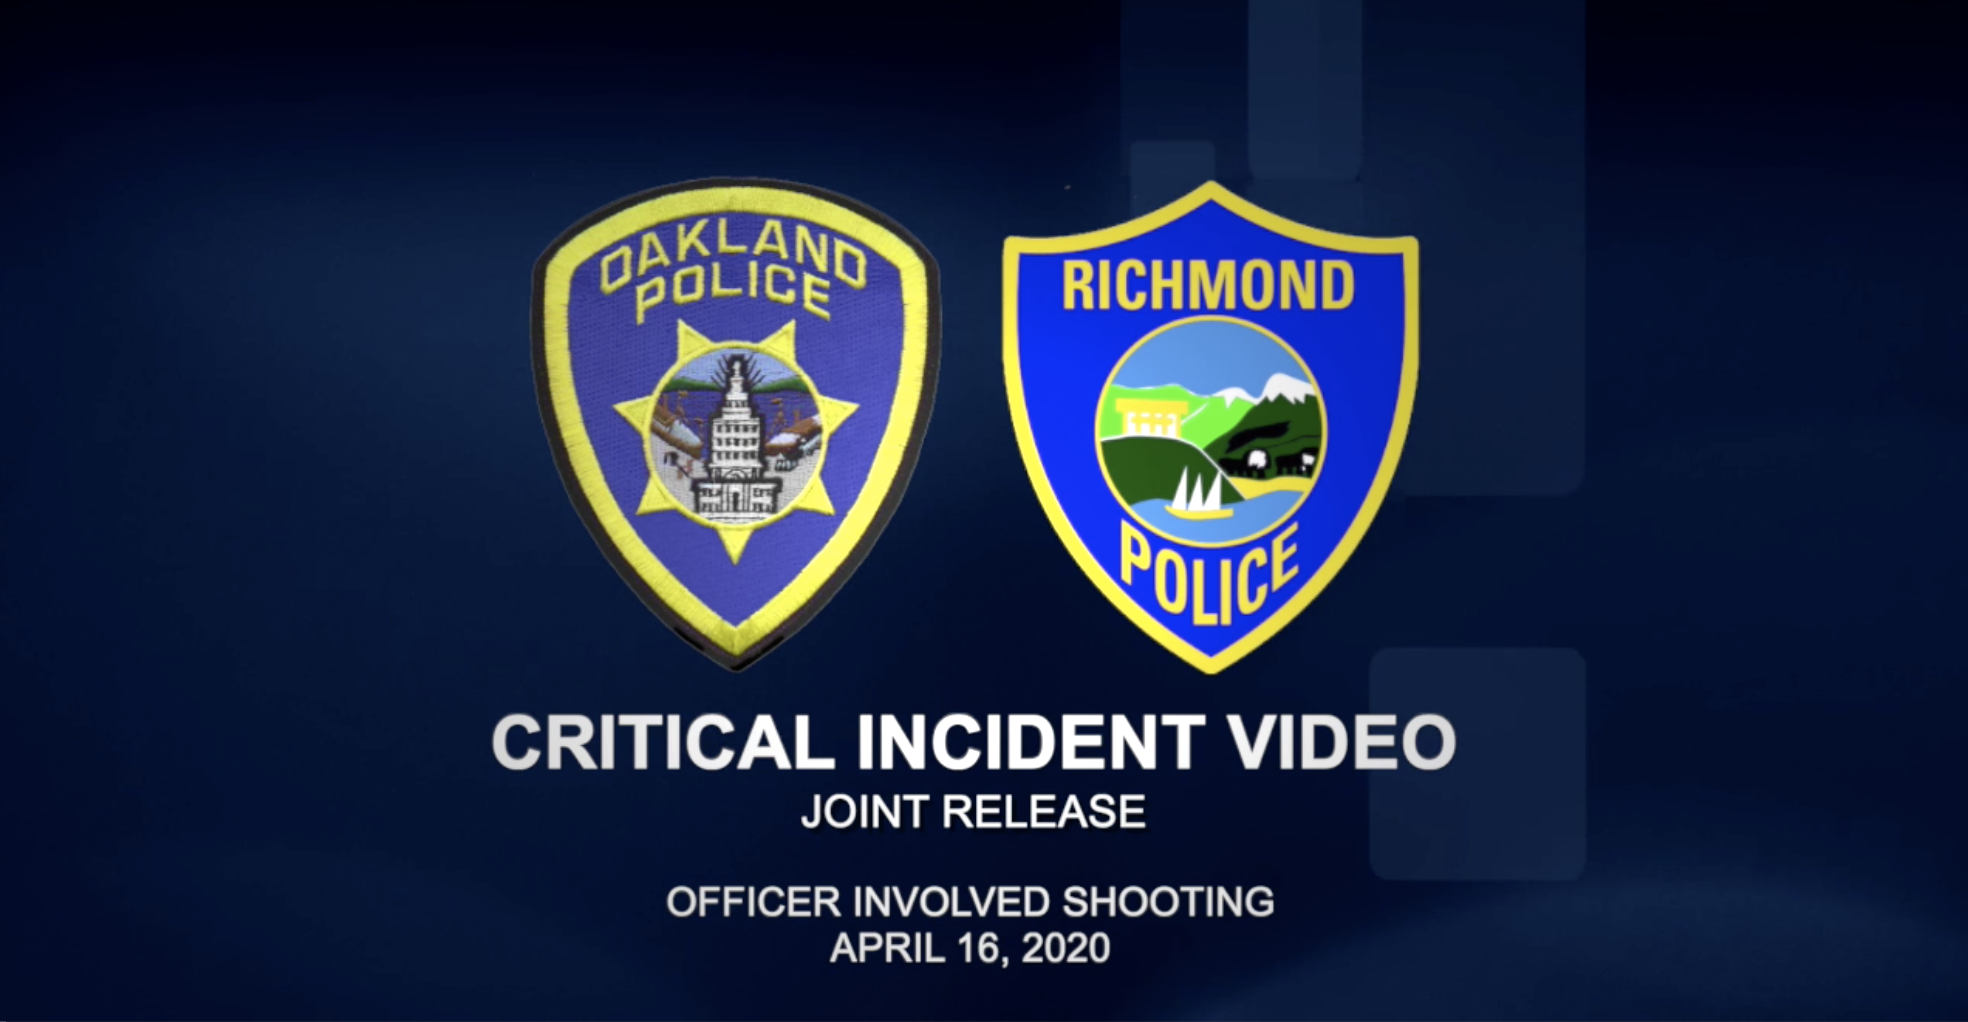 Critical Incident Video